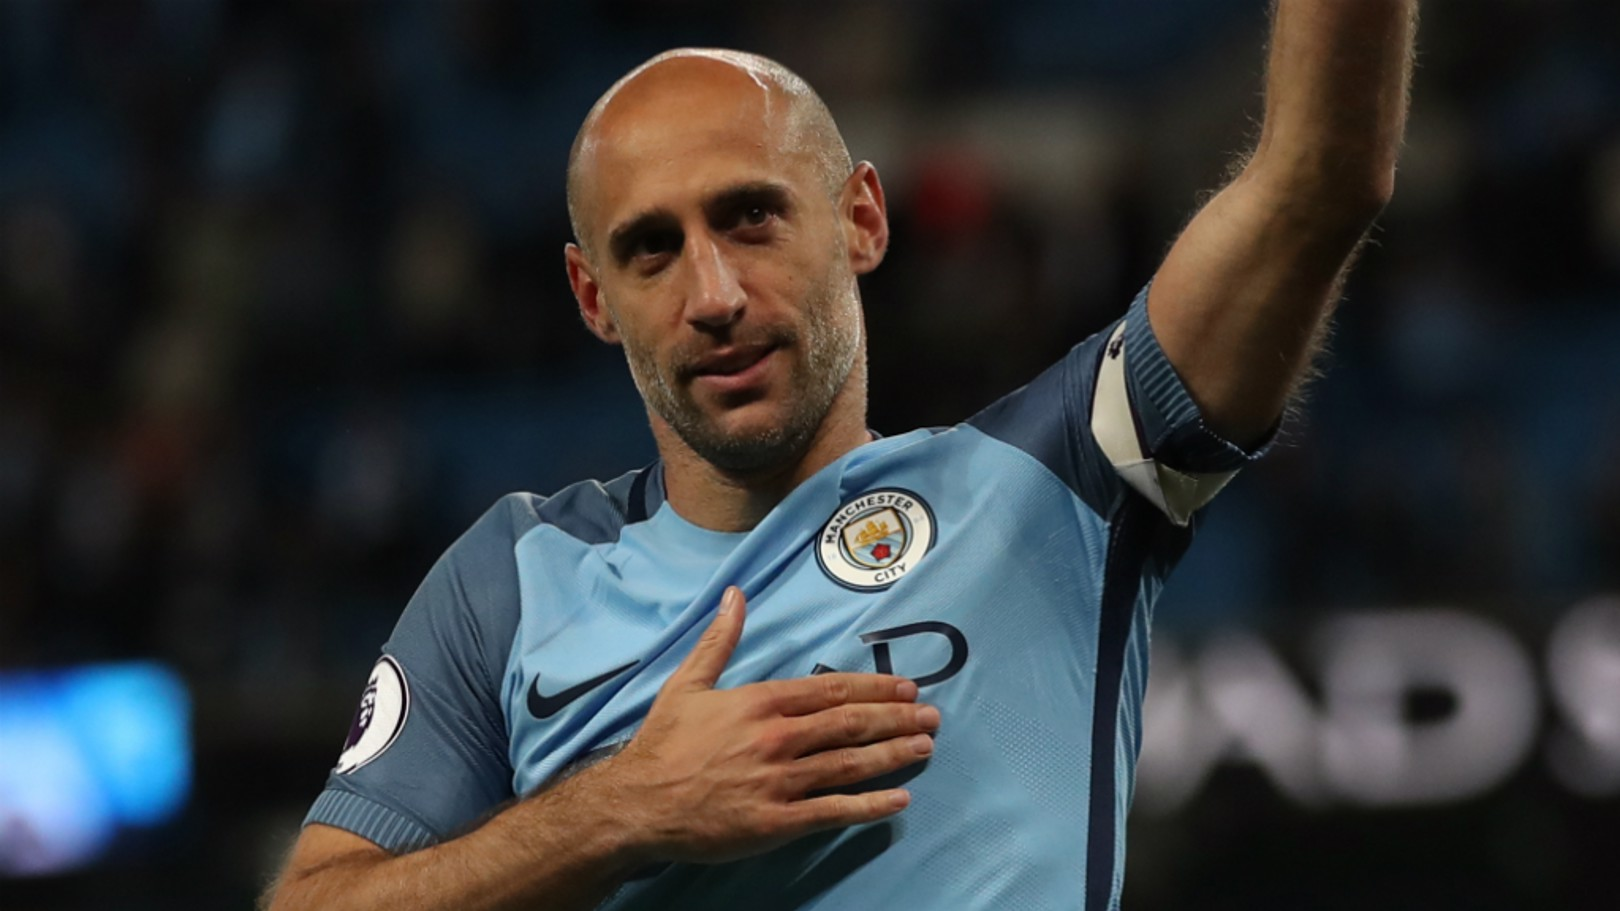 LIONHEART: Pablo Zabaleta bids farewell to the City fans